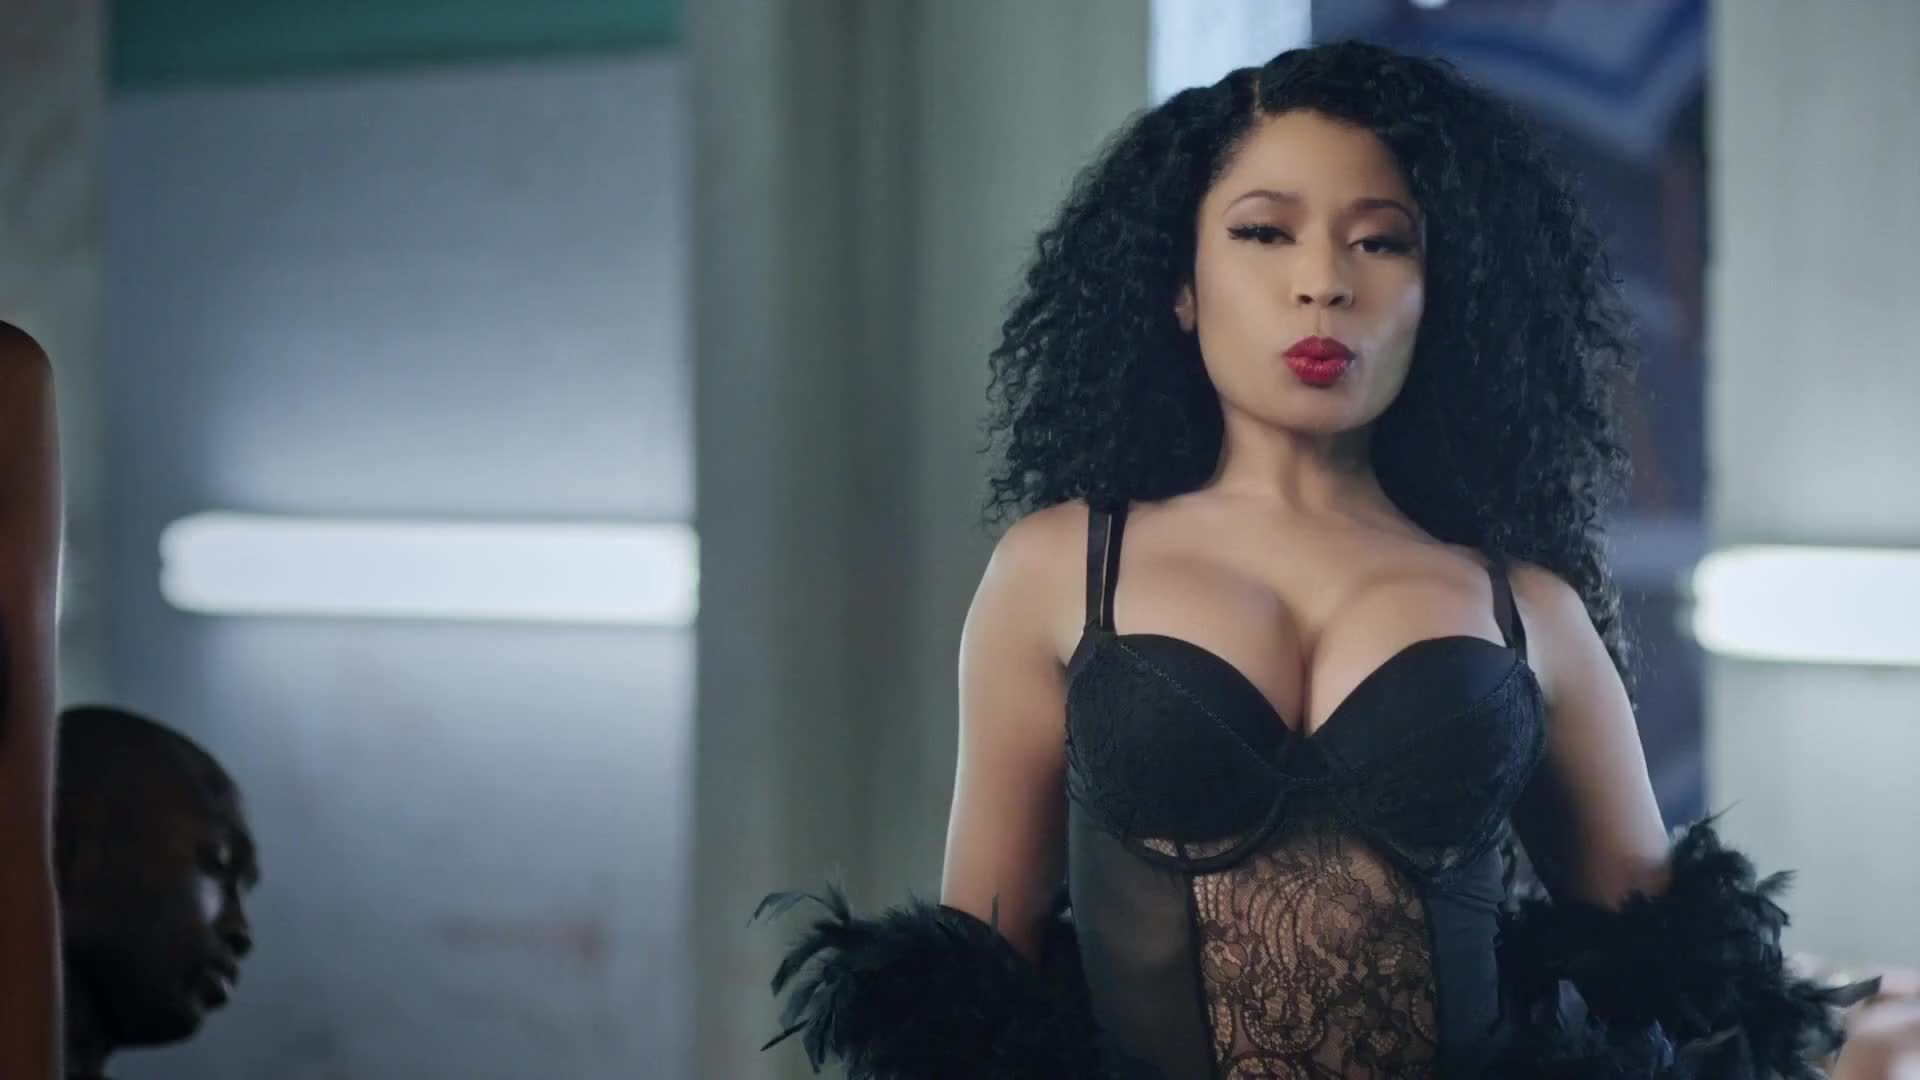 Nicki_Minaj, boobs, music, music video, nicki minaj, nicki_minaj, twerk, watchitfortheplot, Nicki Minaj in 'Nicki Minaj - Only' GIFs